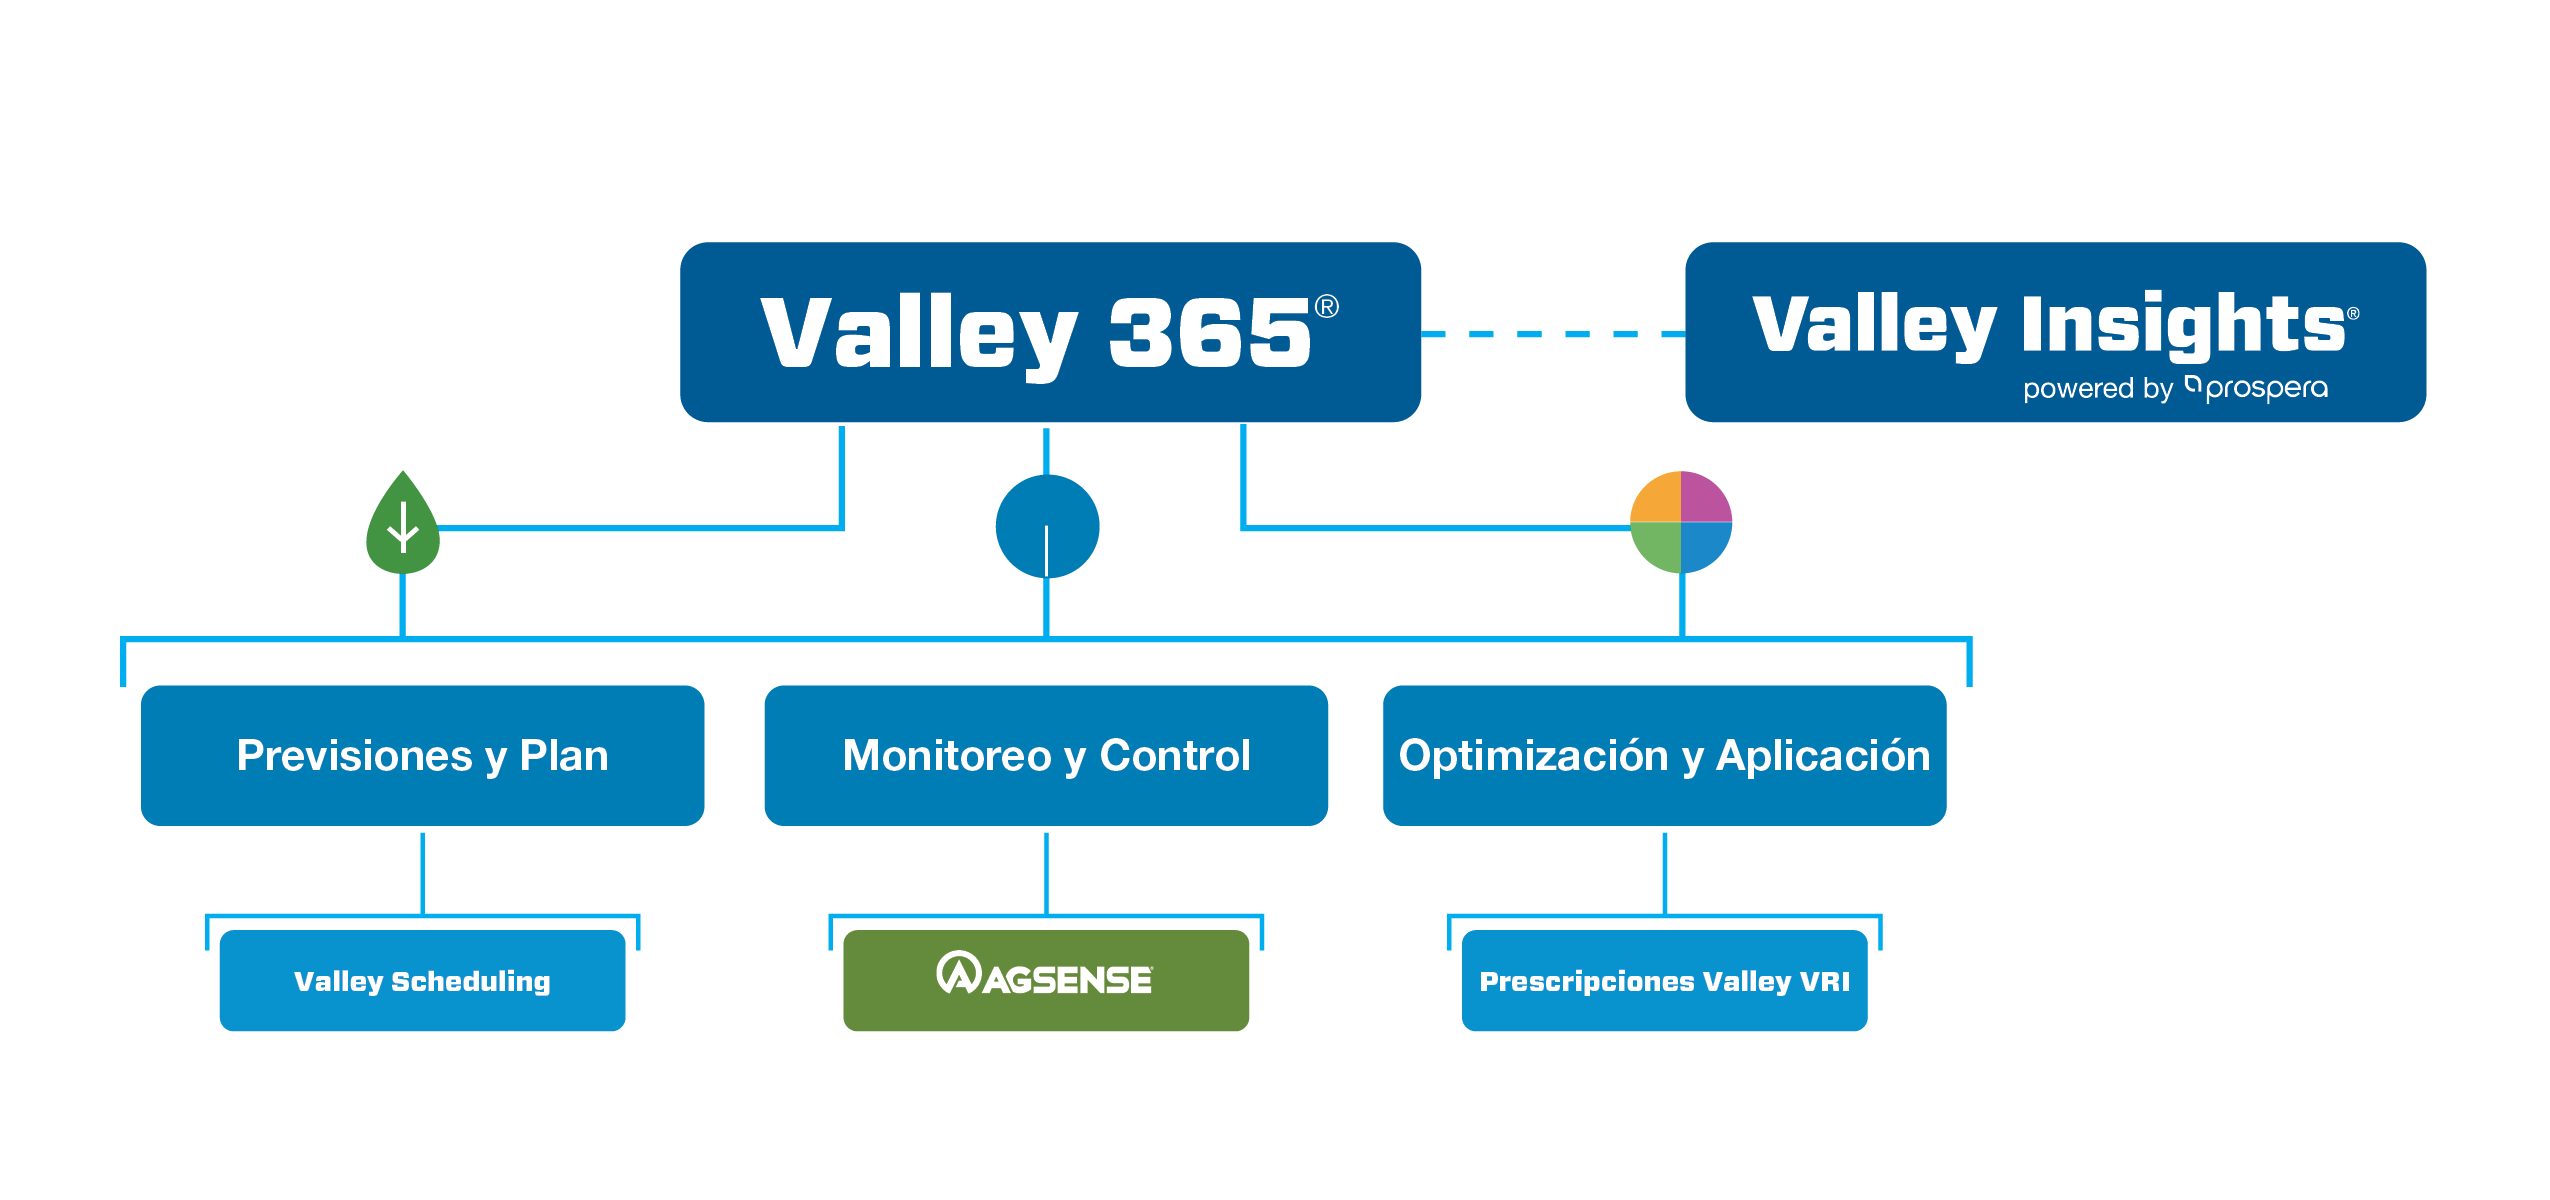 Valley 365 product mix